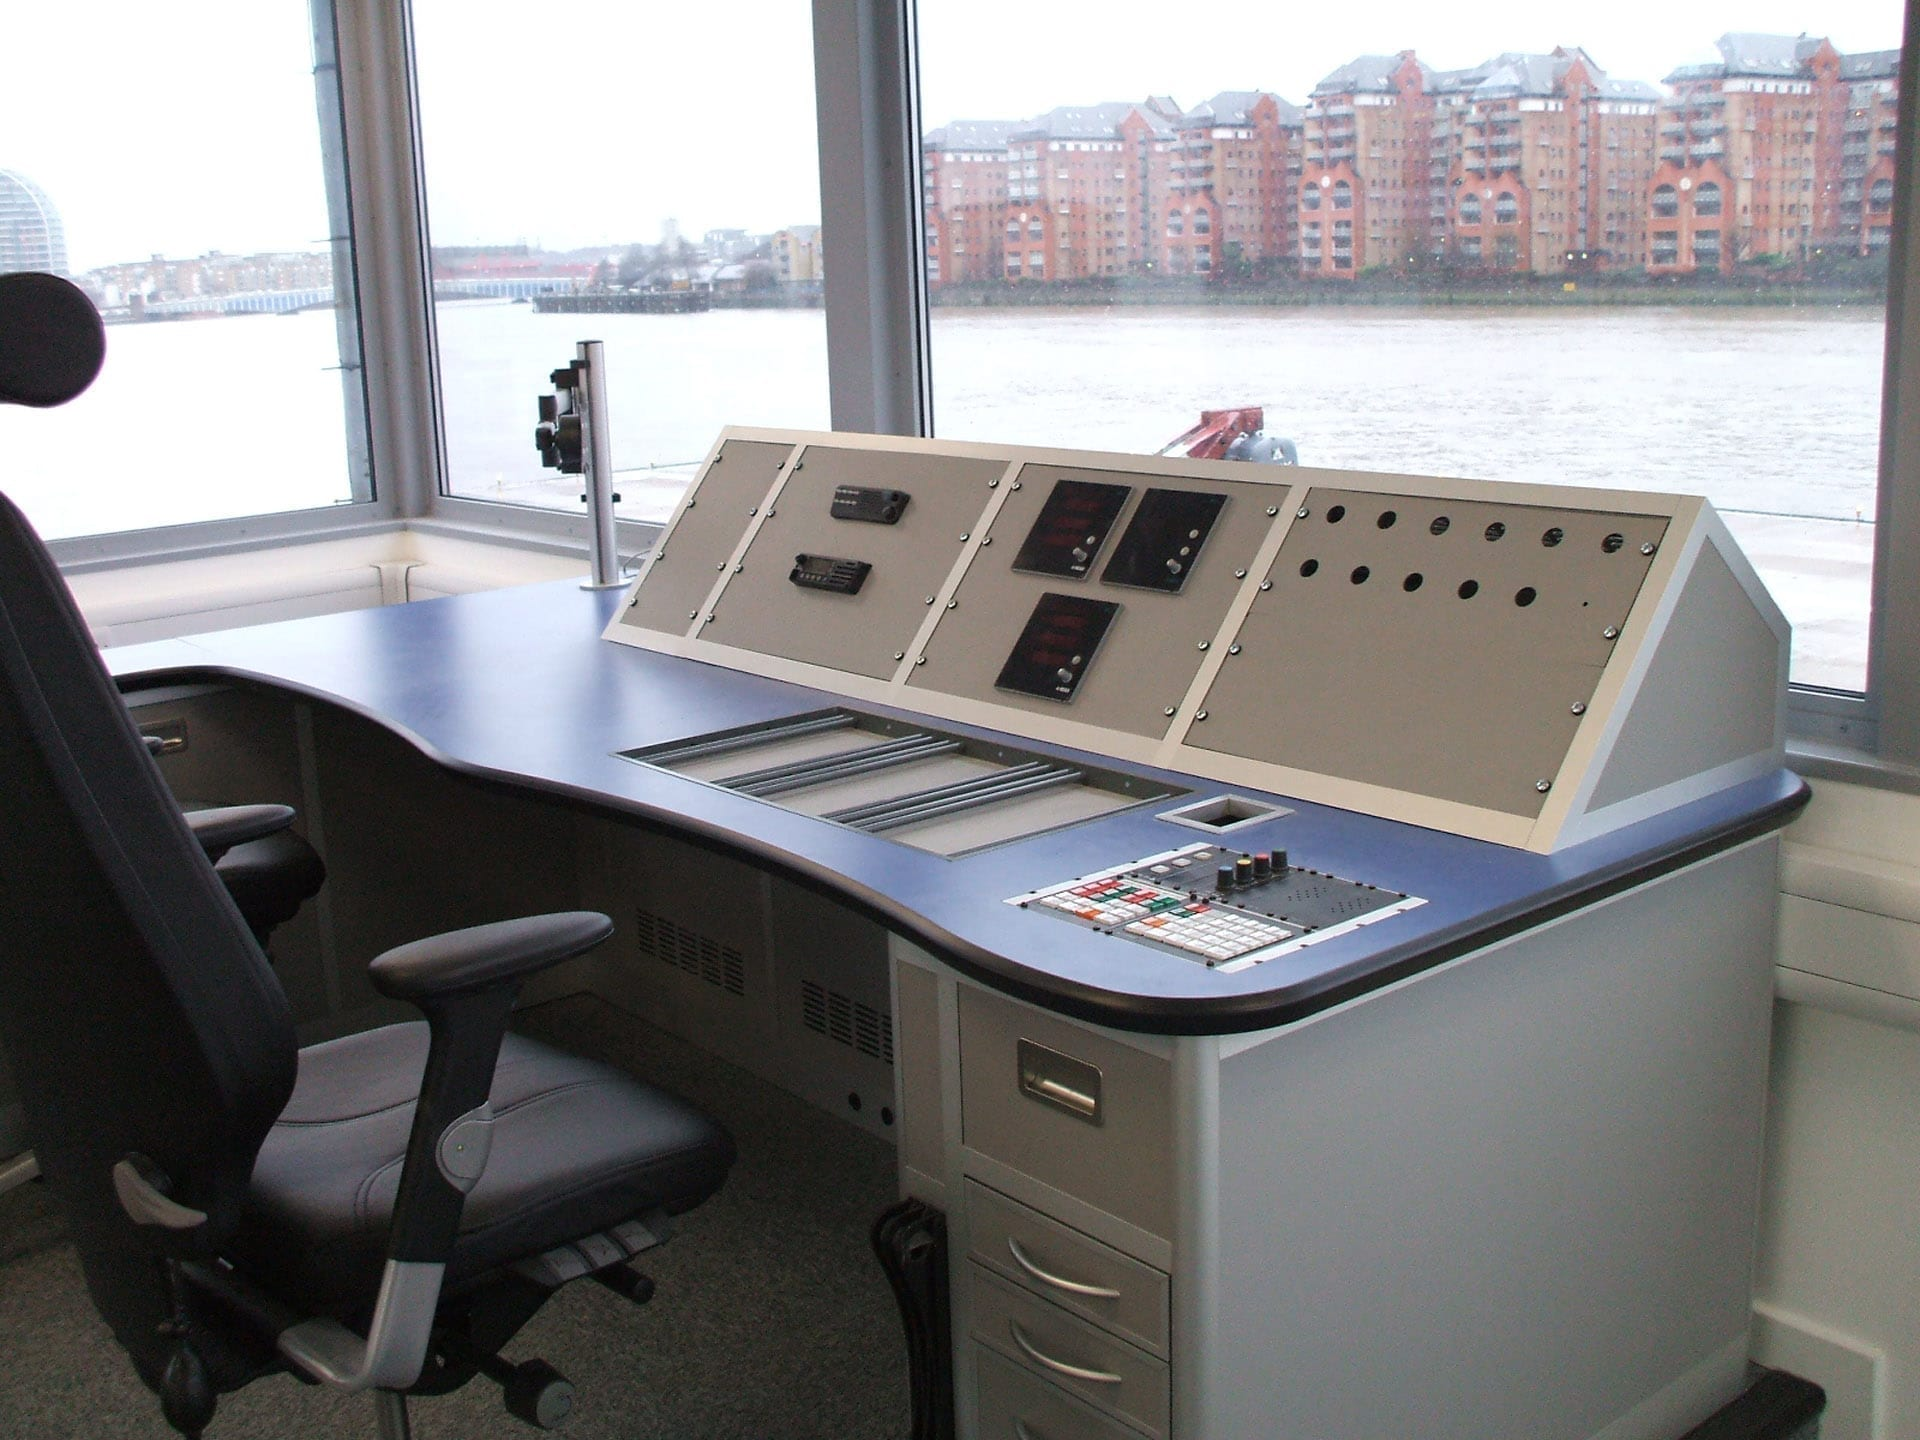 heliport atc console solution thinking space